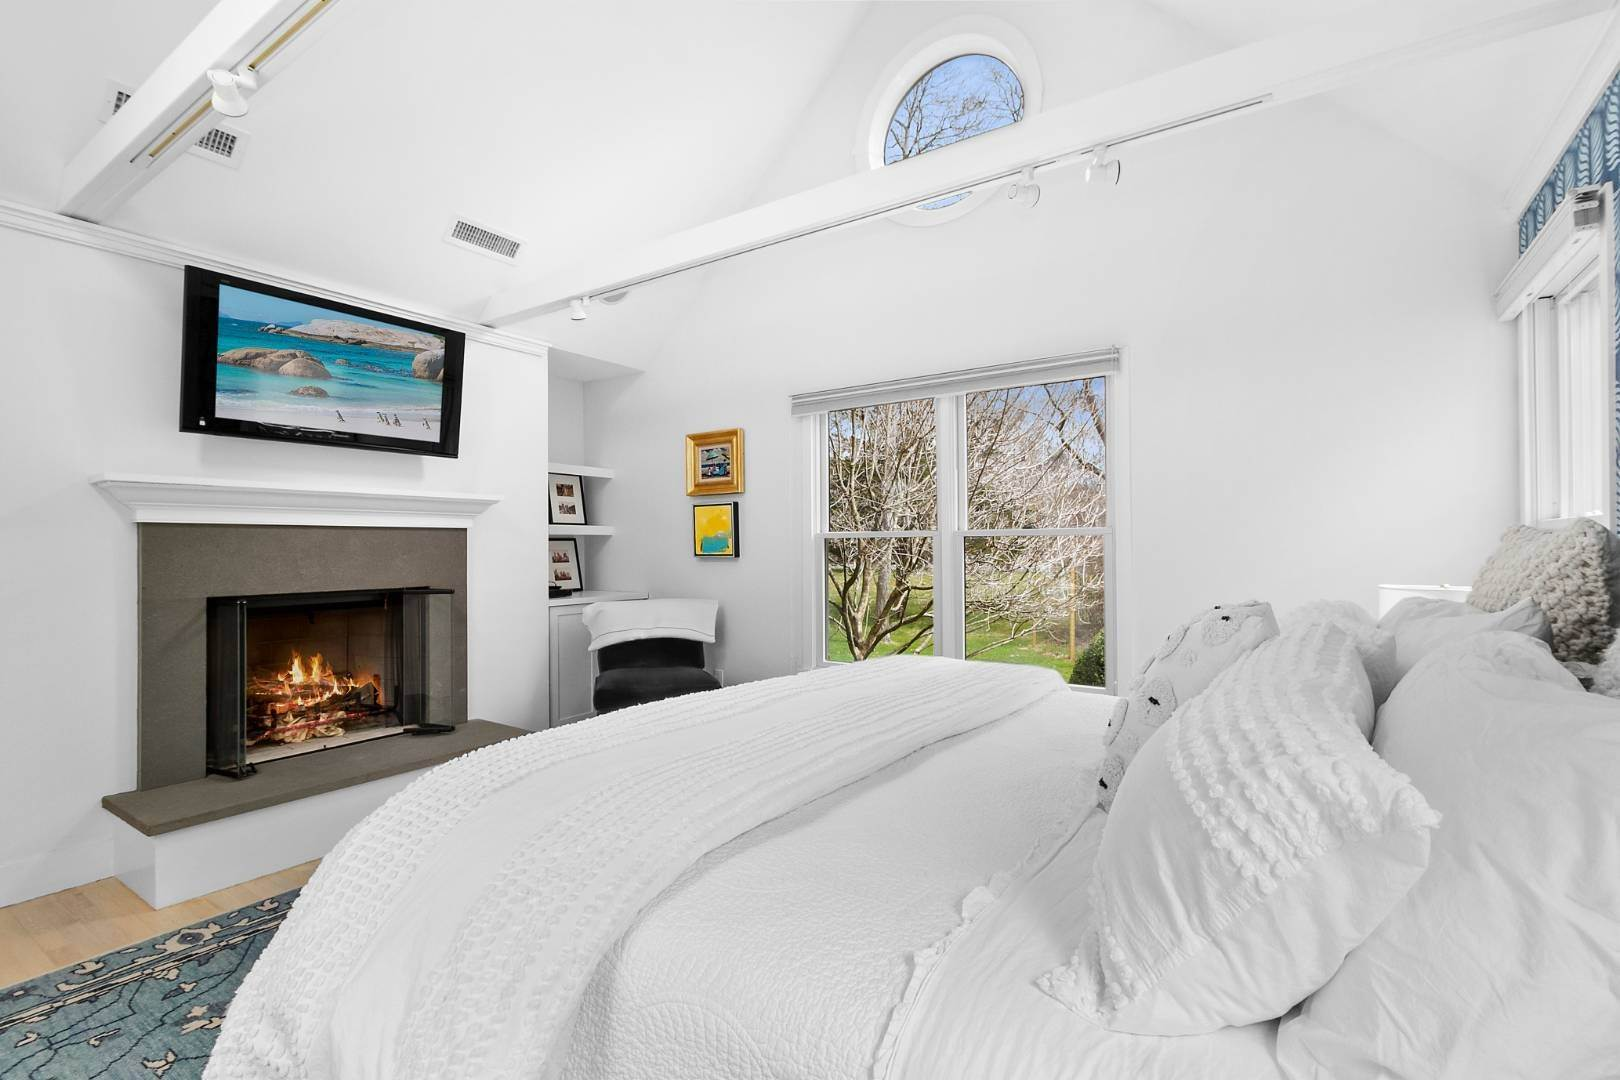 6. Single Family Home for Sale at Historic Springs Two-House Compound 104 Old Stone Hwy, East Hampton, NY 11937